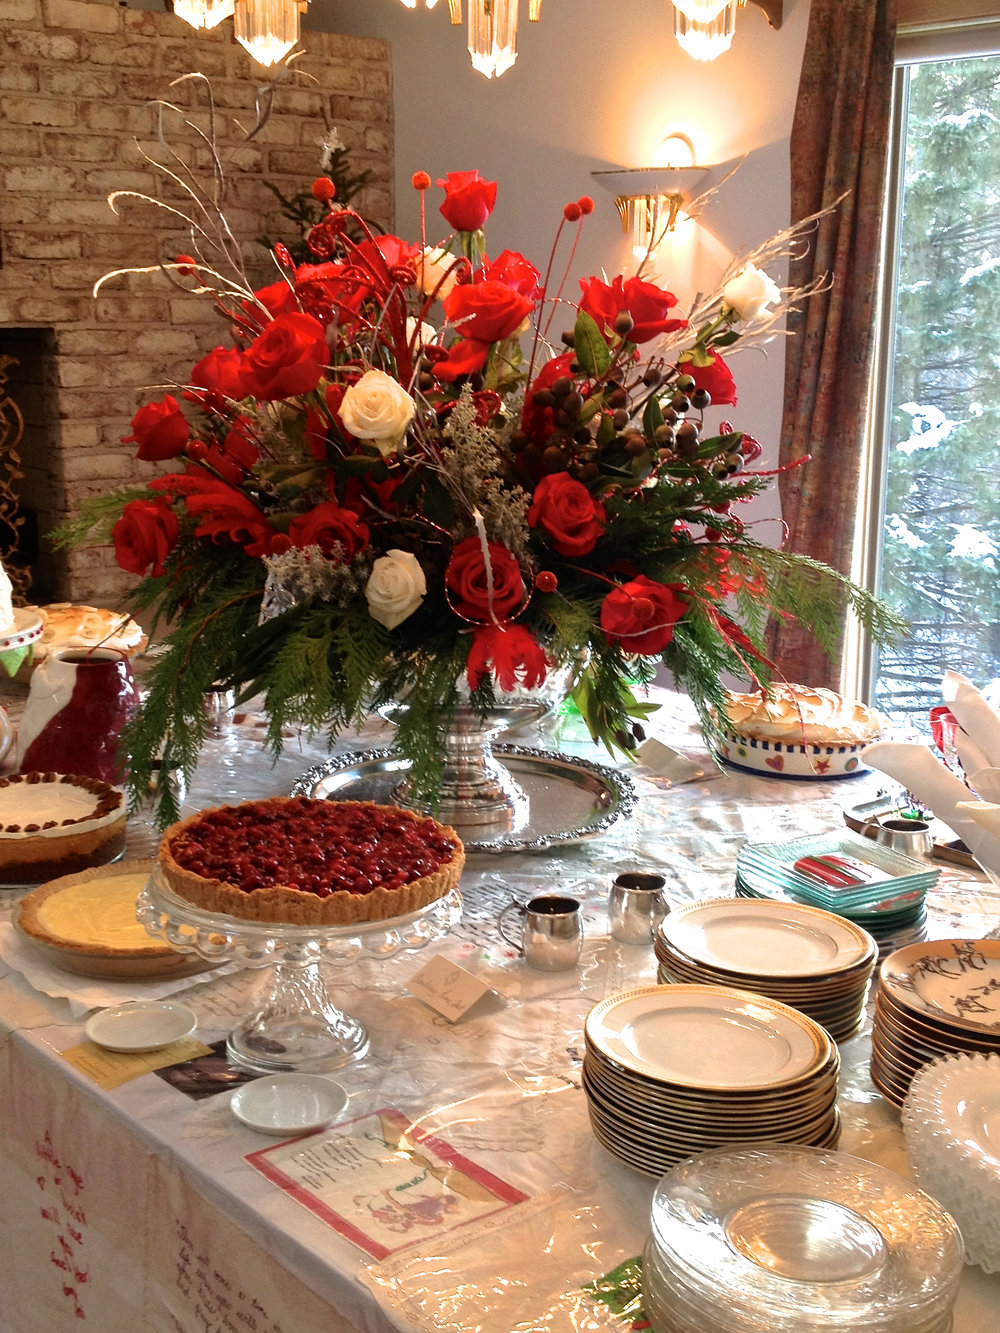 cindi_dessertparty_2014#2_spiritedtable_photo1.jpg